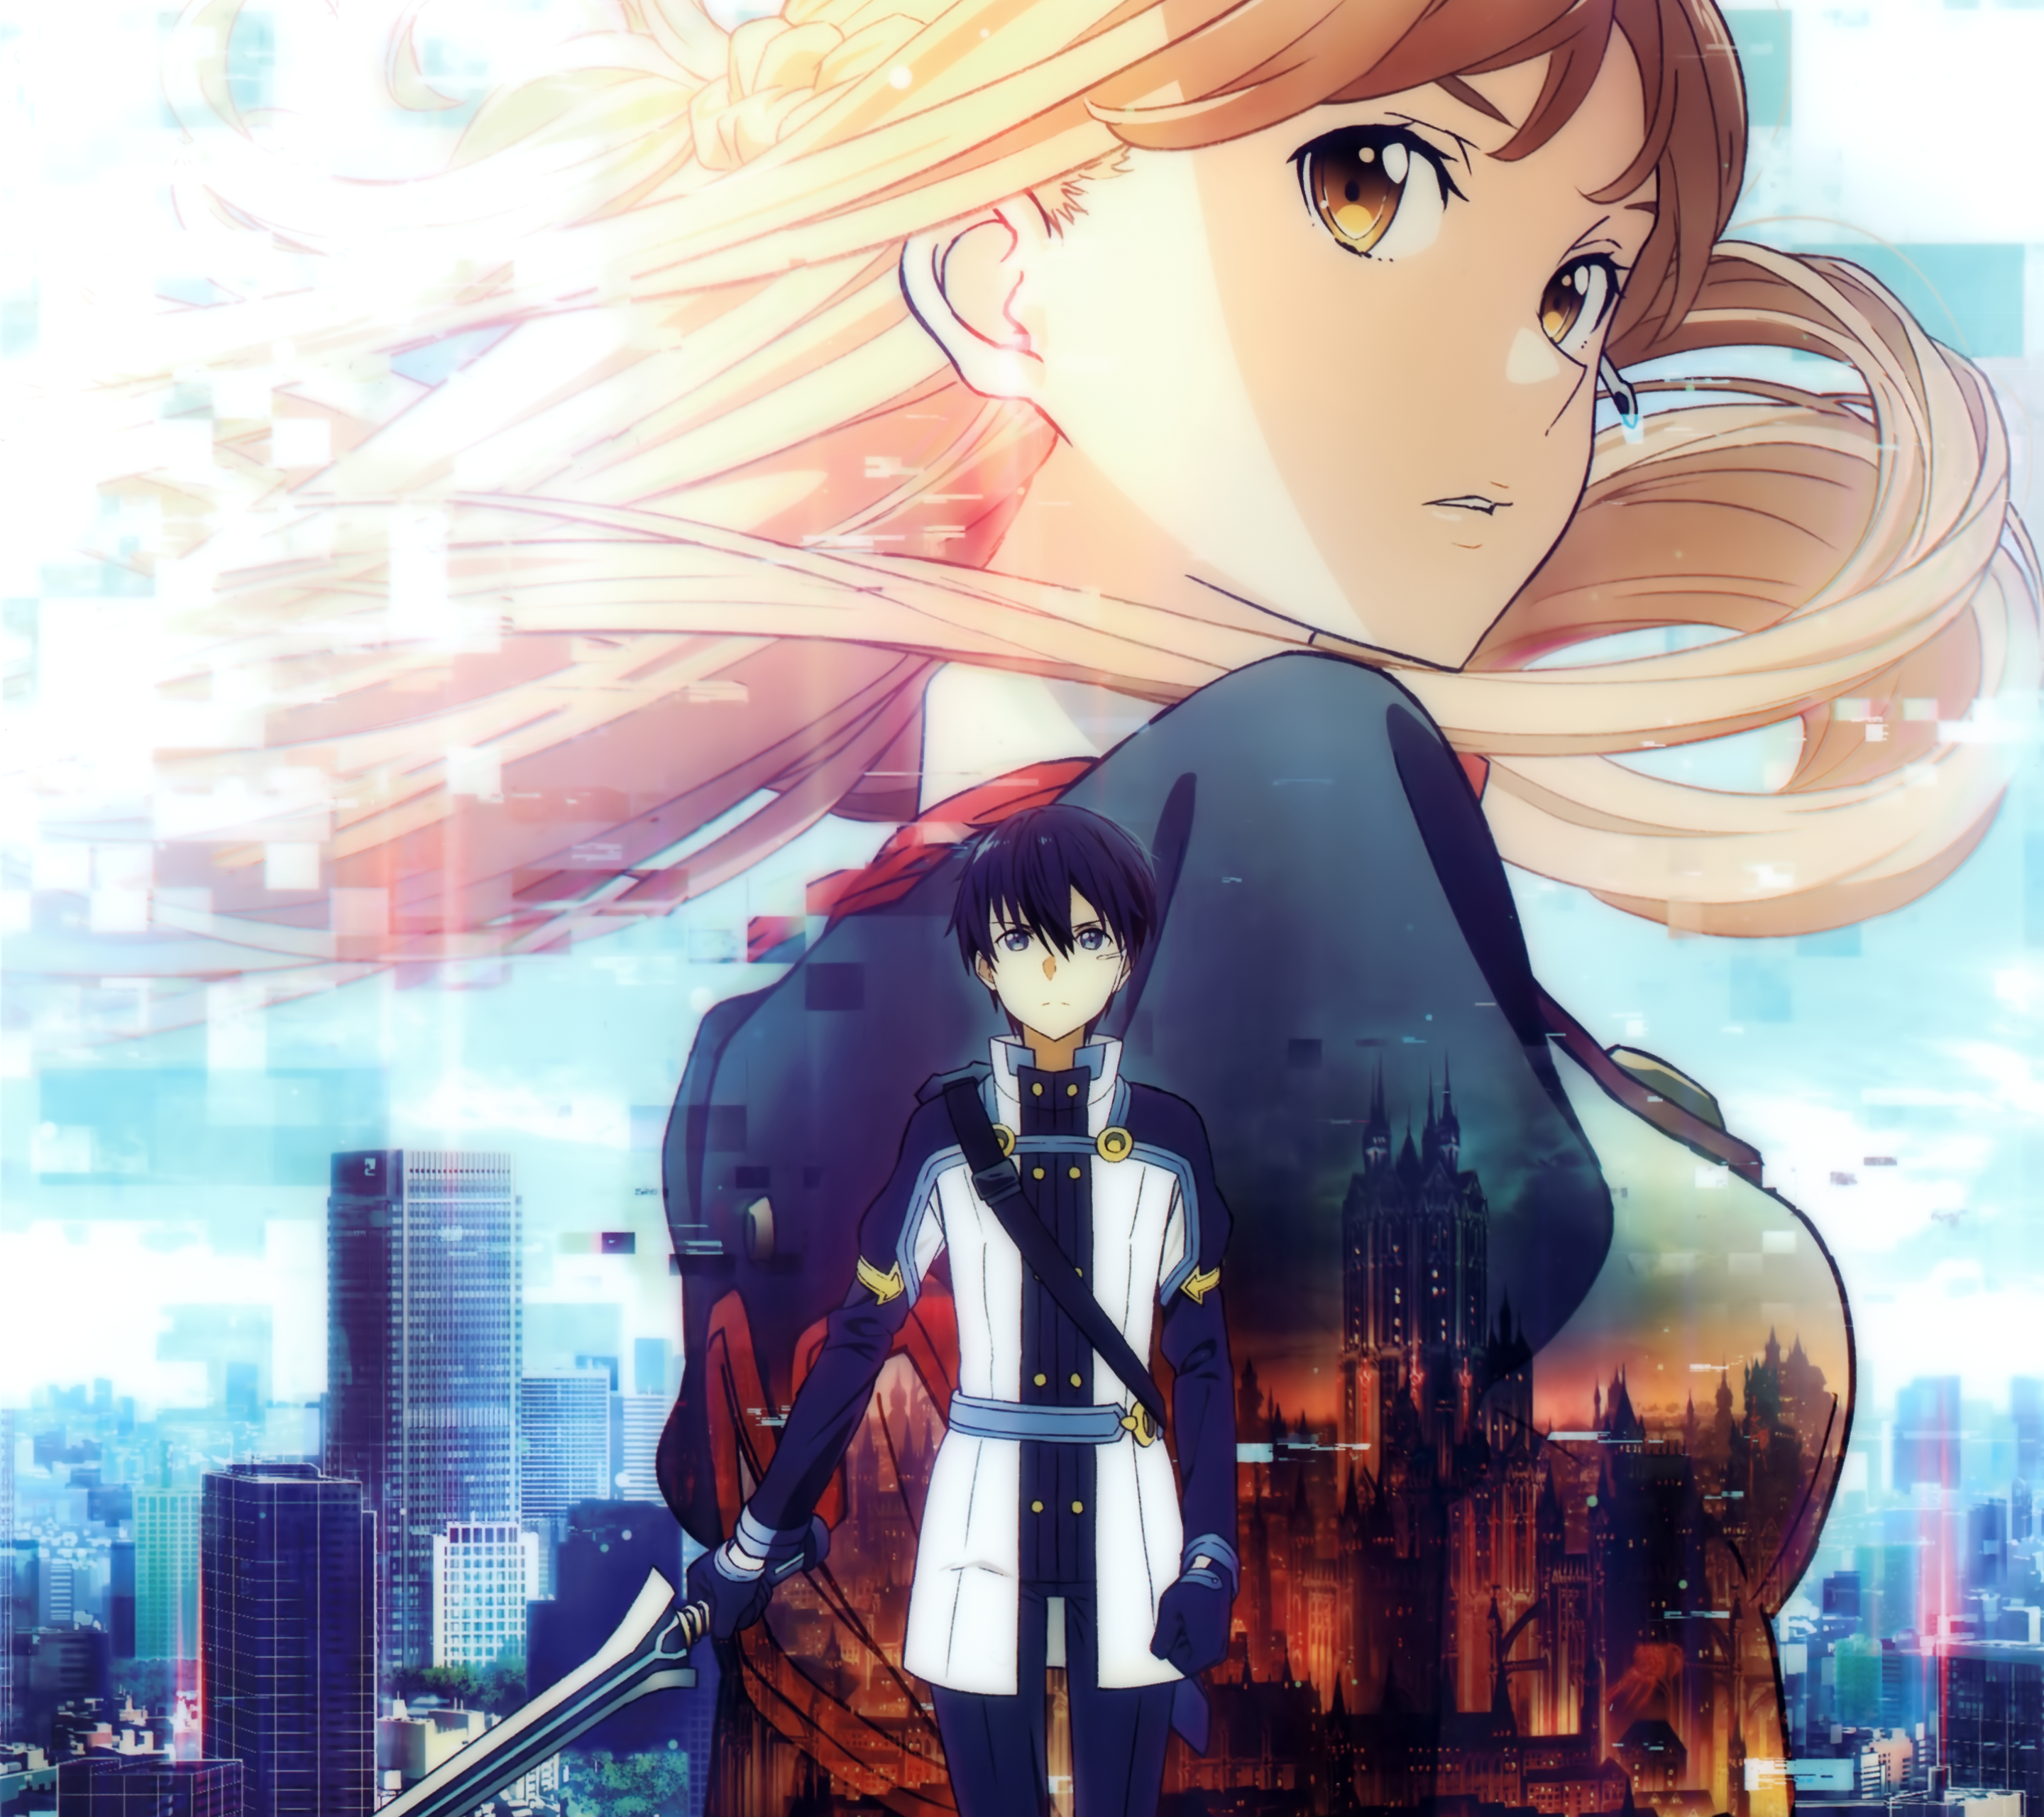 Pin By Rocki On Sao In 2020 Sword Art Online Wallpaper Sword Art Online Movie Sword Art Online Season